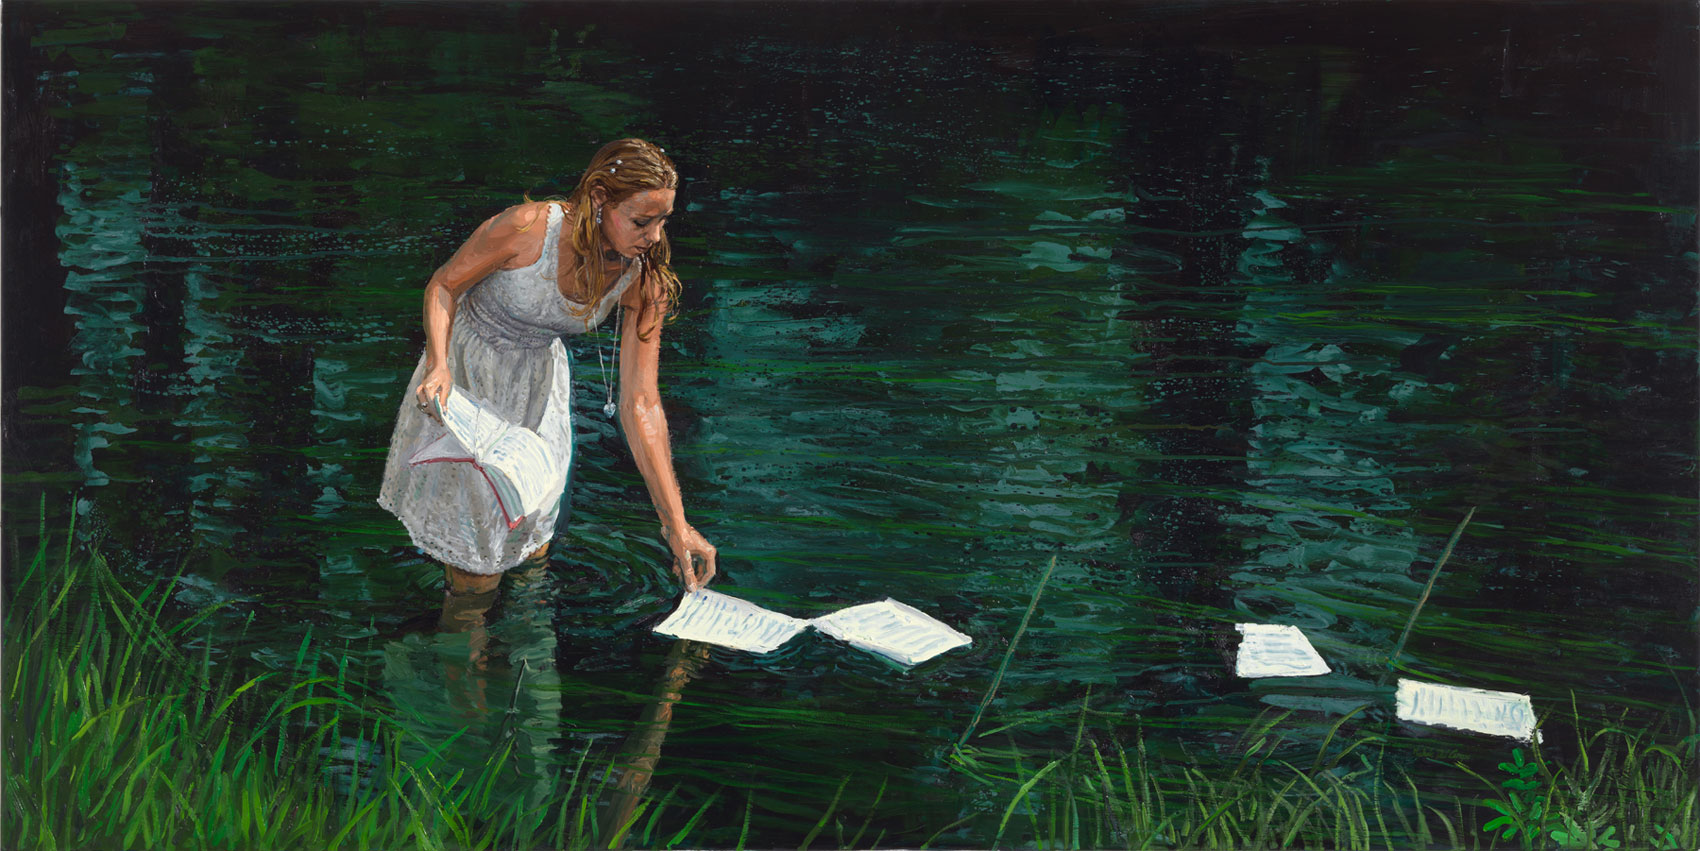 michele-del-campo,-Floating-words,-100x200cm